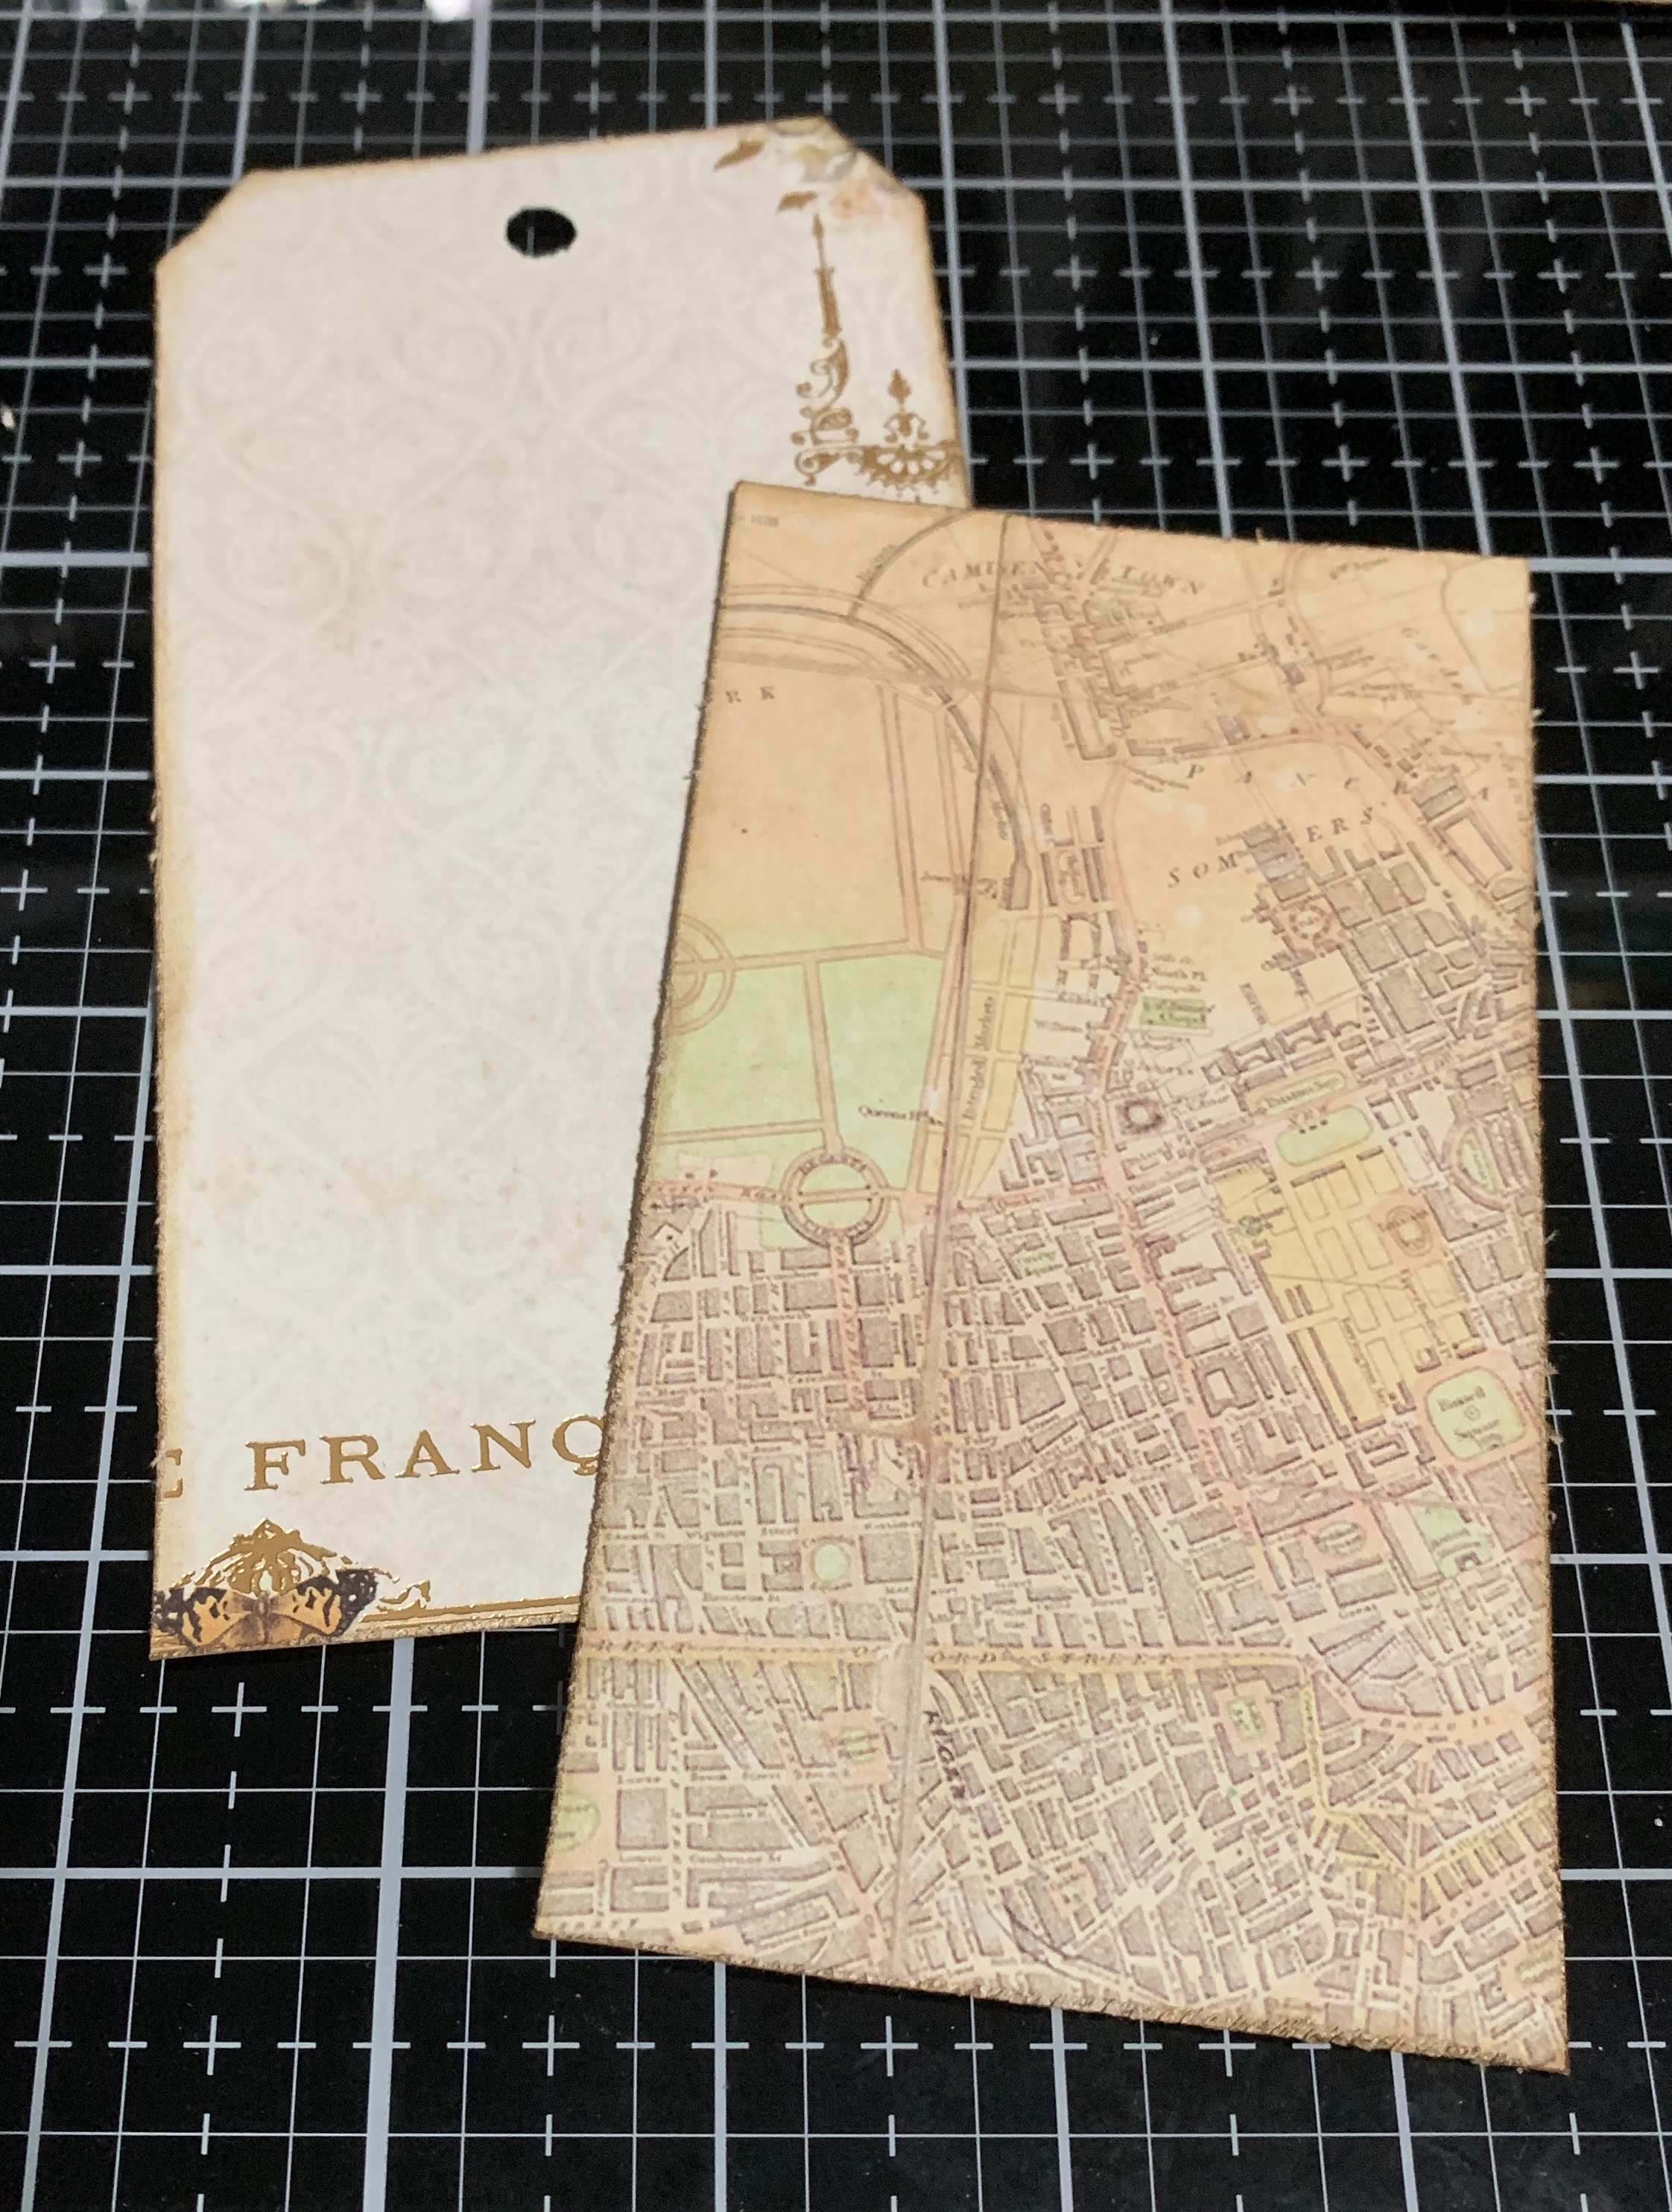 Step 3 - scrapbooking a vintage Thankful Tag using Prima Marketing Autumn Sunset patterned paper